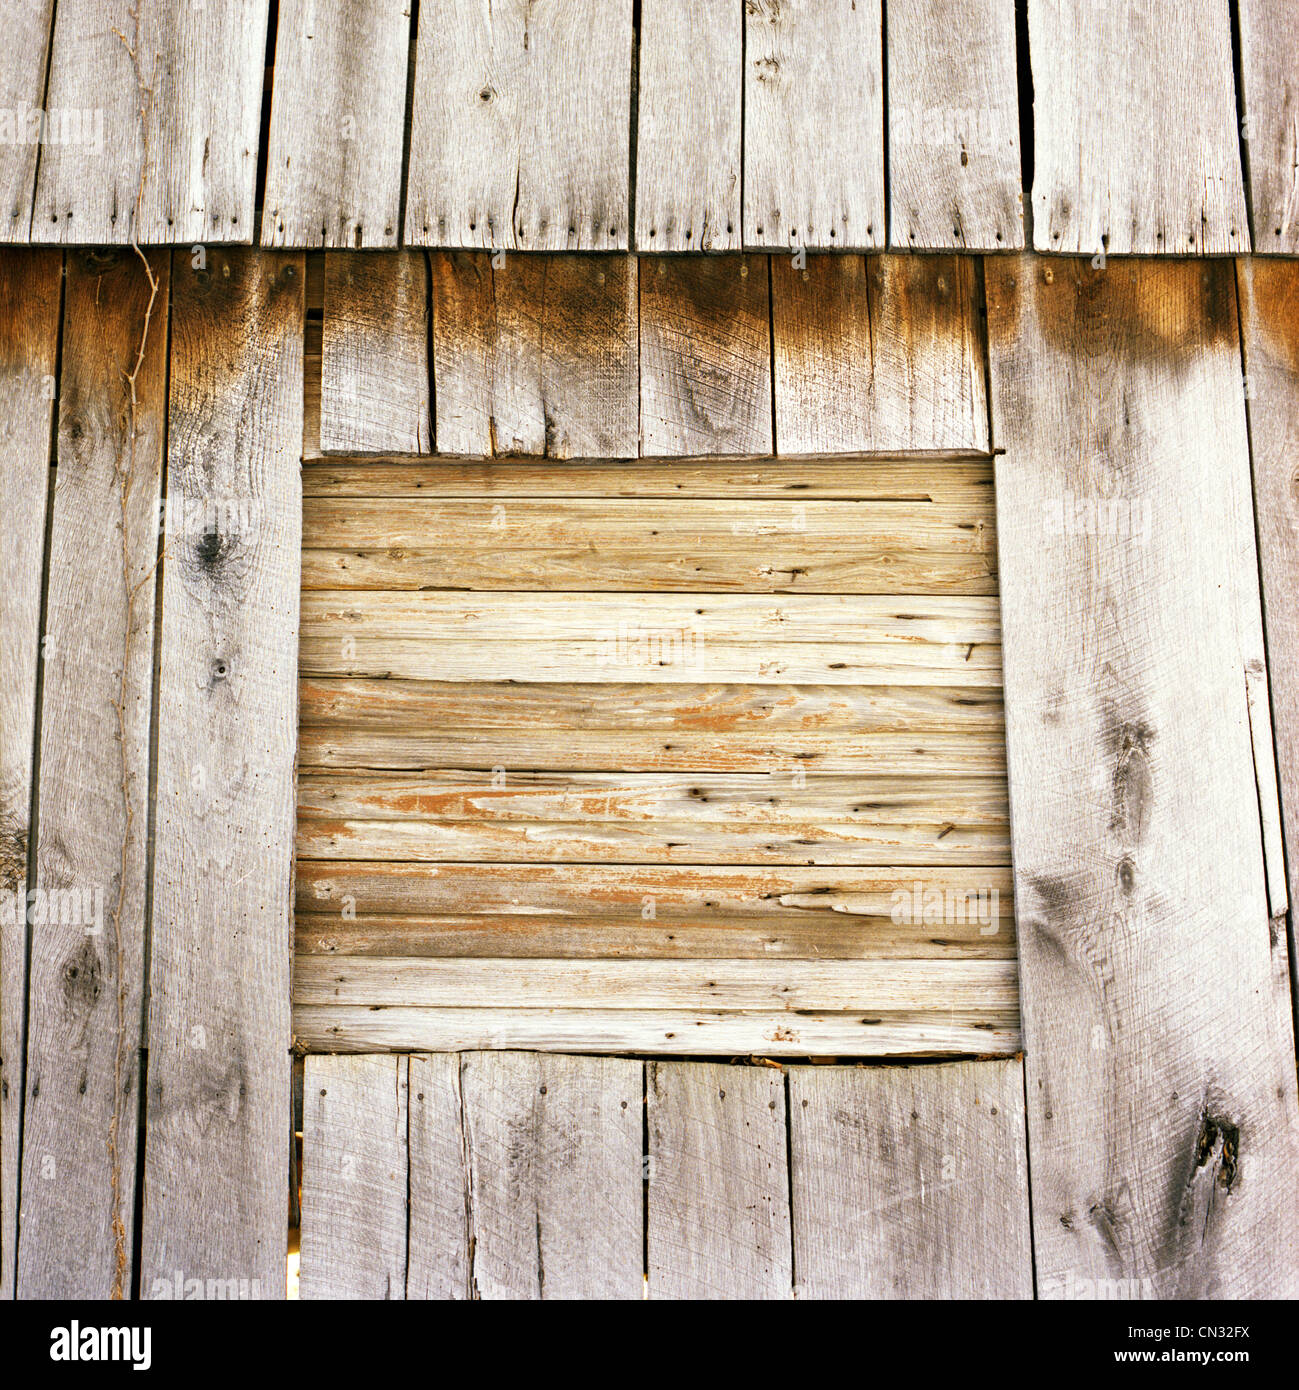 Abandoned wooden barn - Stock Image